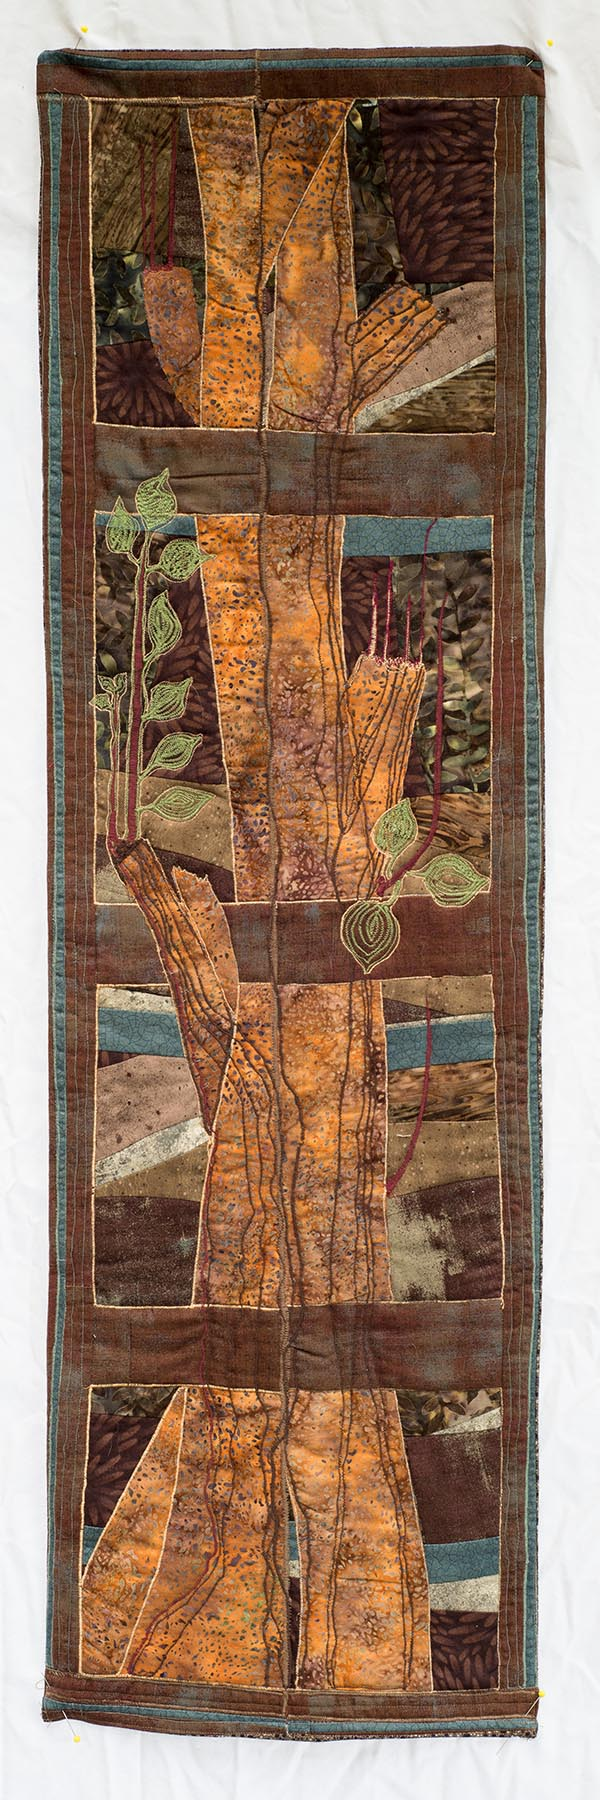 #sylvialeo, #pittsburgh, #pittsburghartist, #quilt, #tree